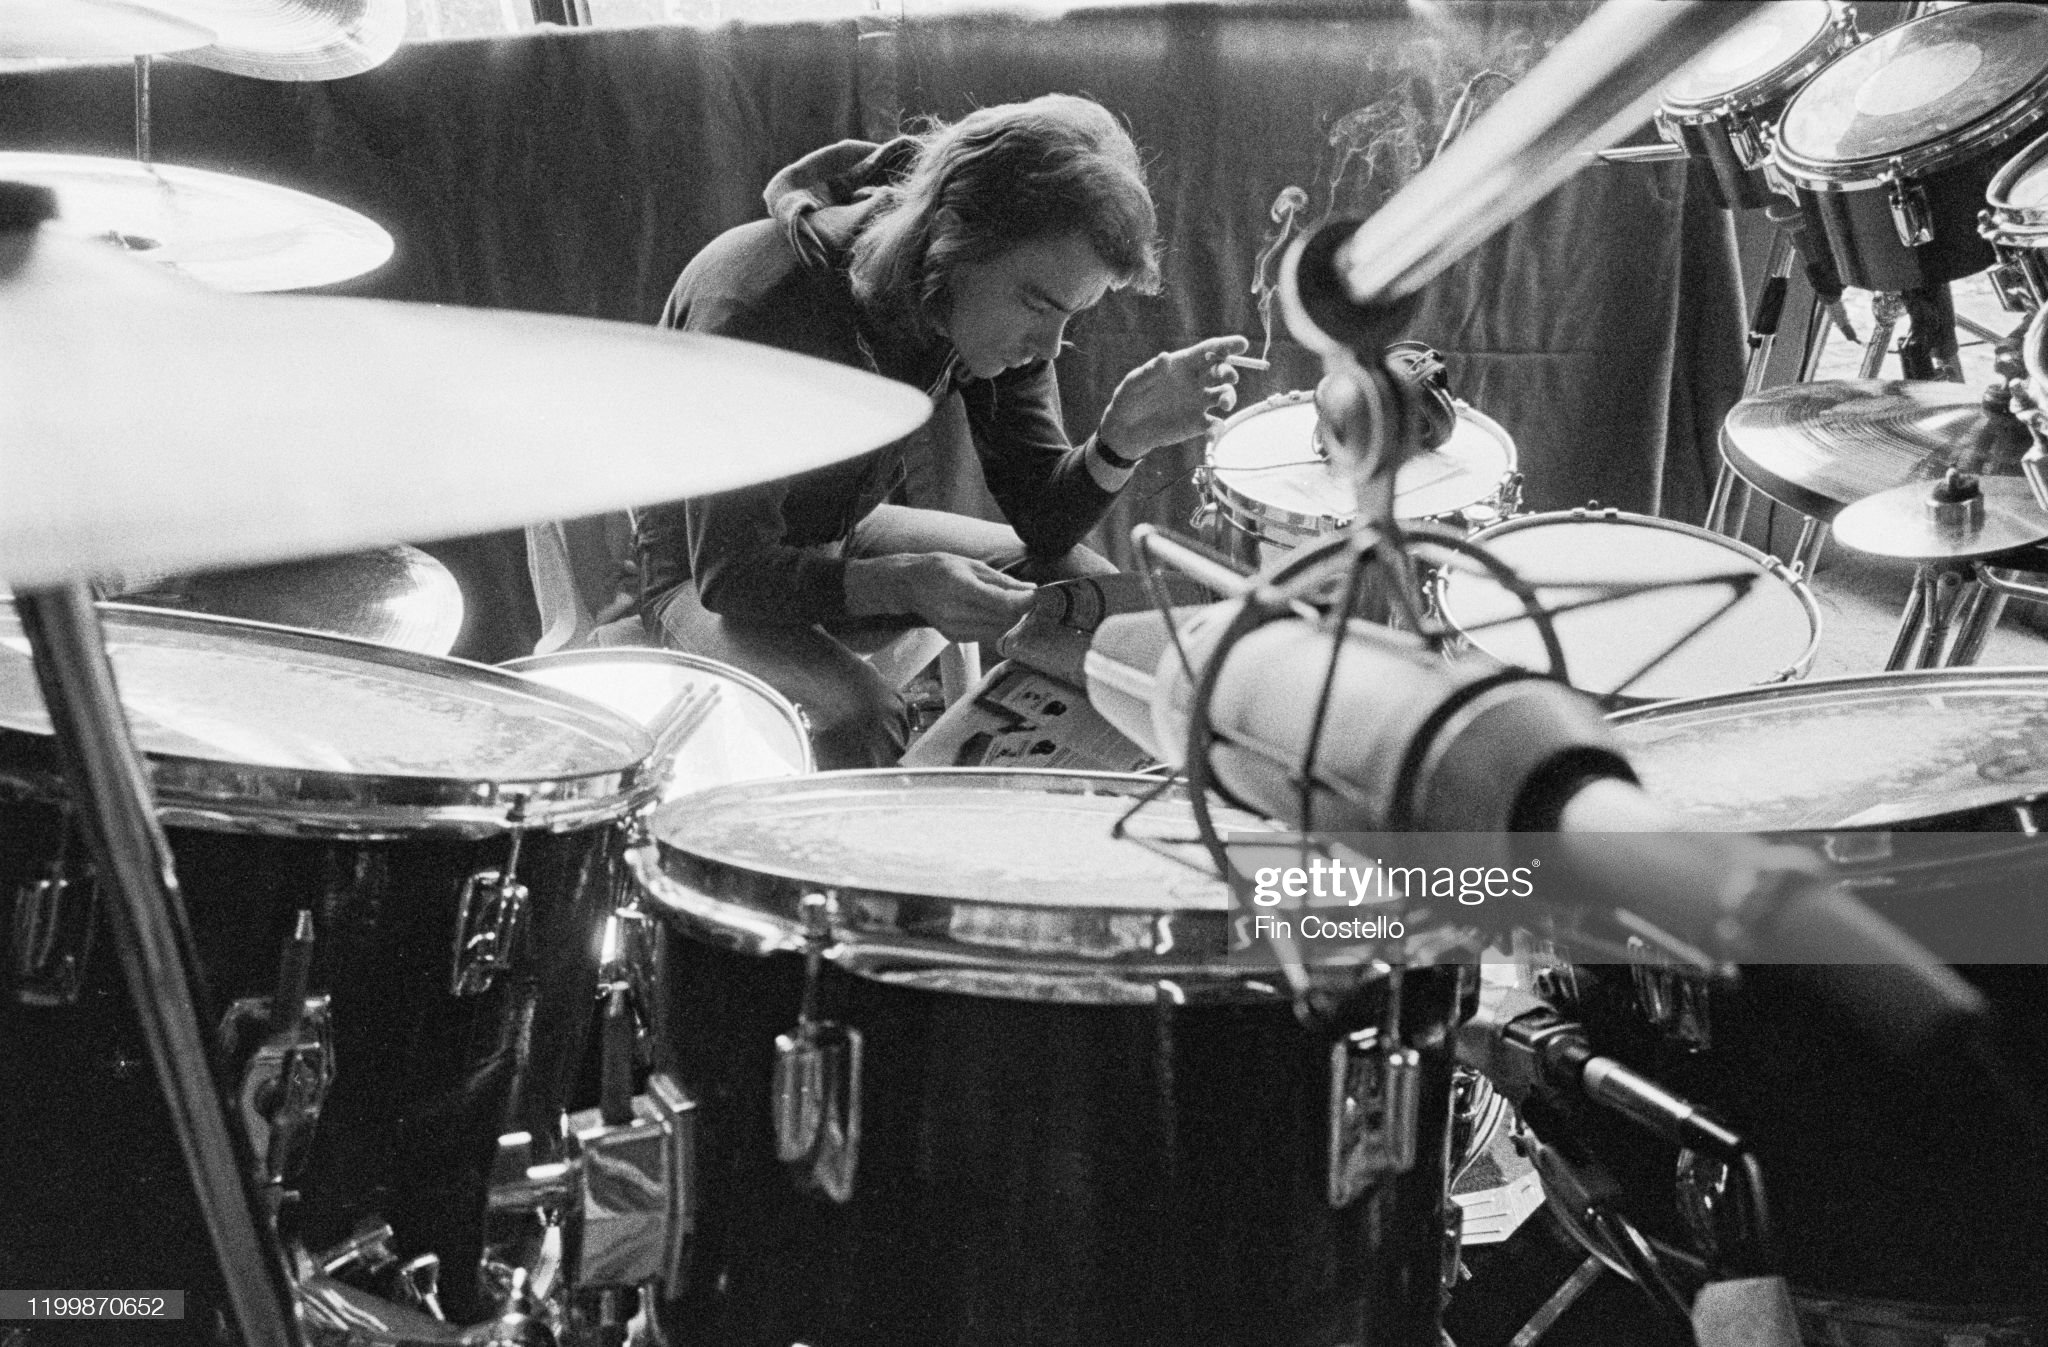 drummer-and-lyricist-neil-peart-of-canadian-progressive-rock-group-picture-id1199870652